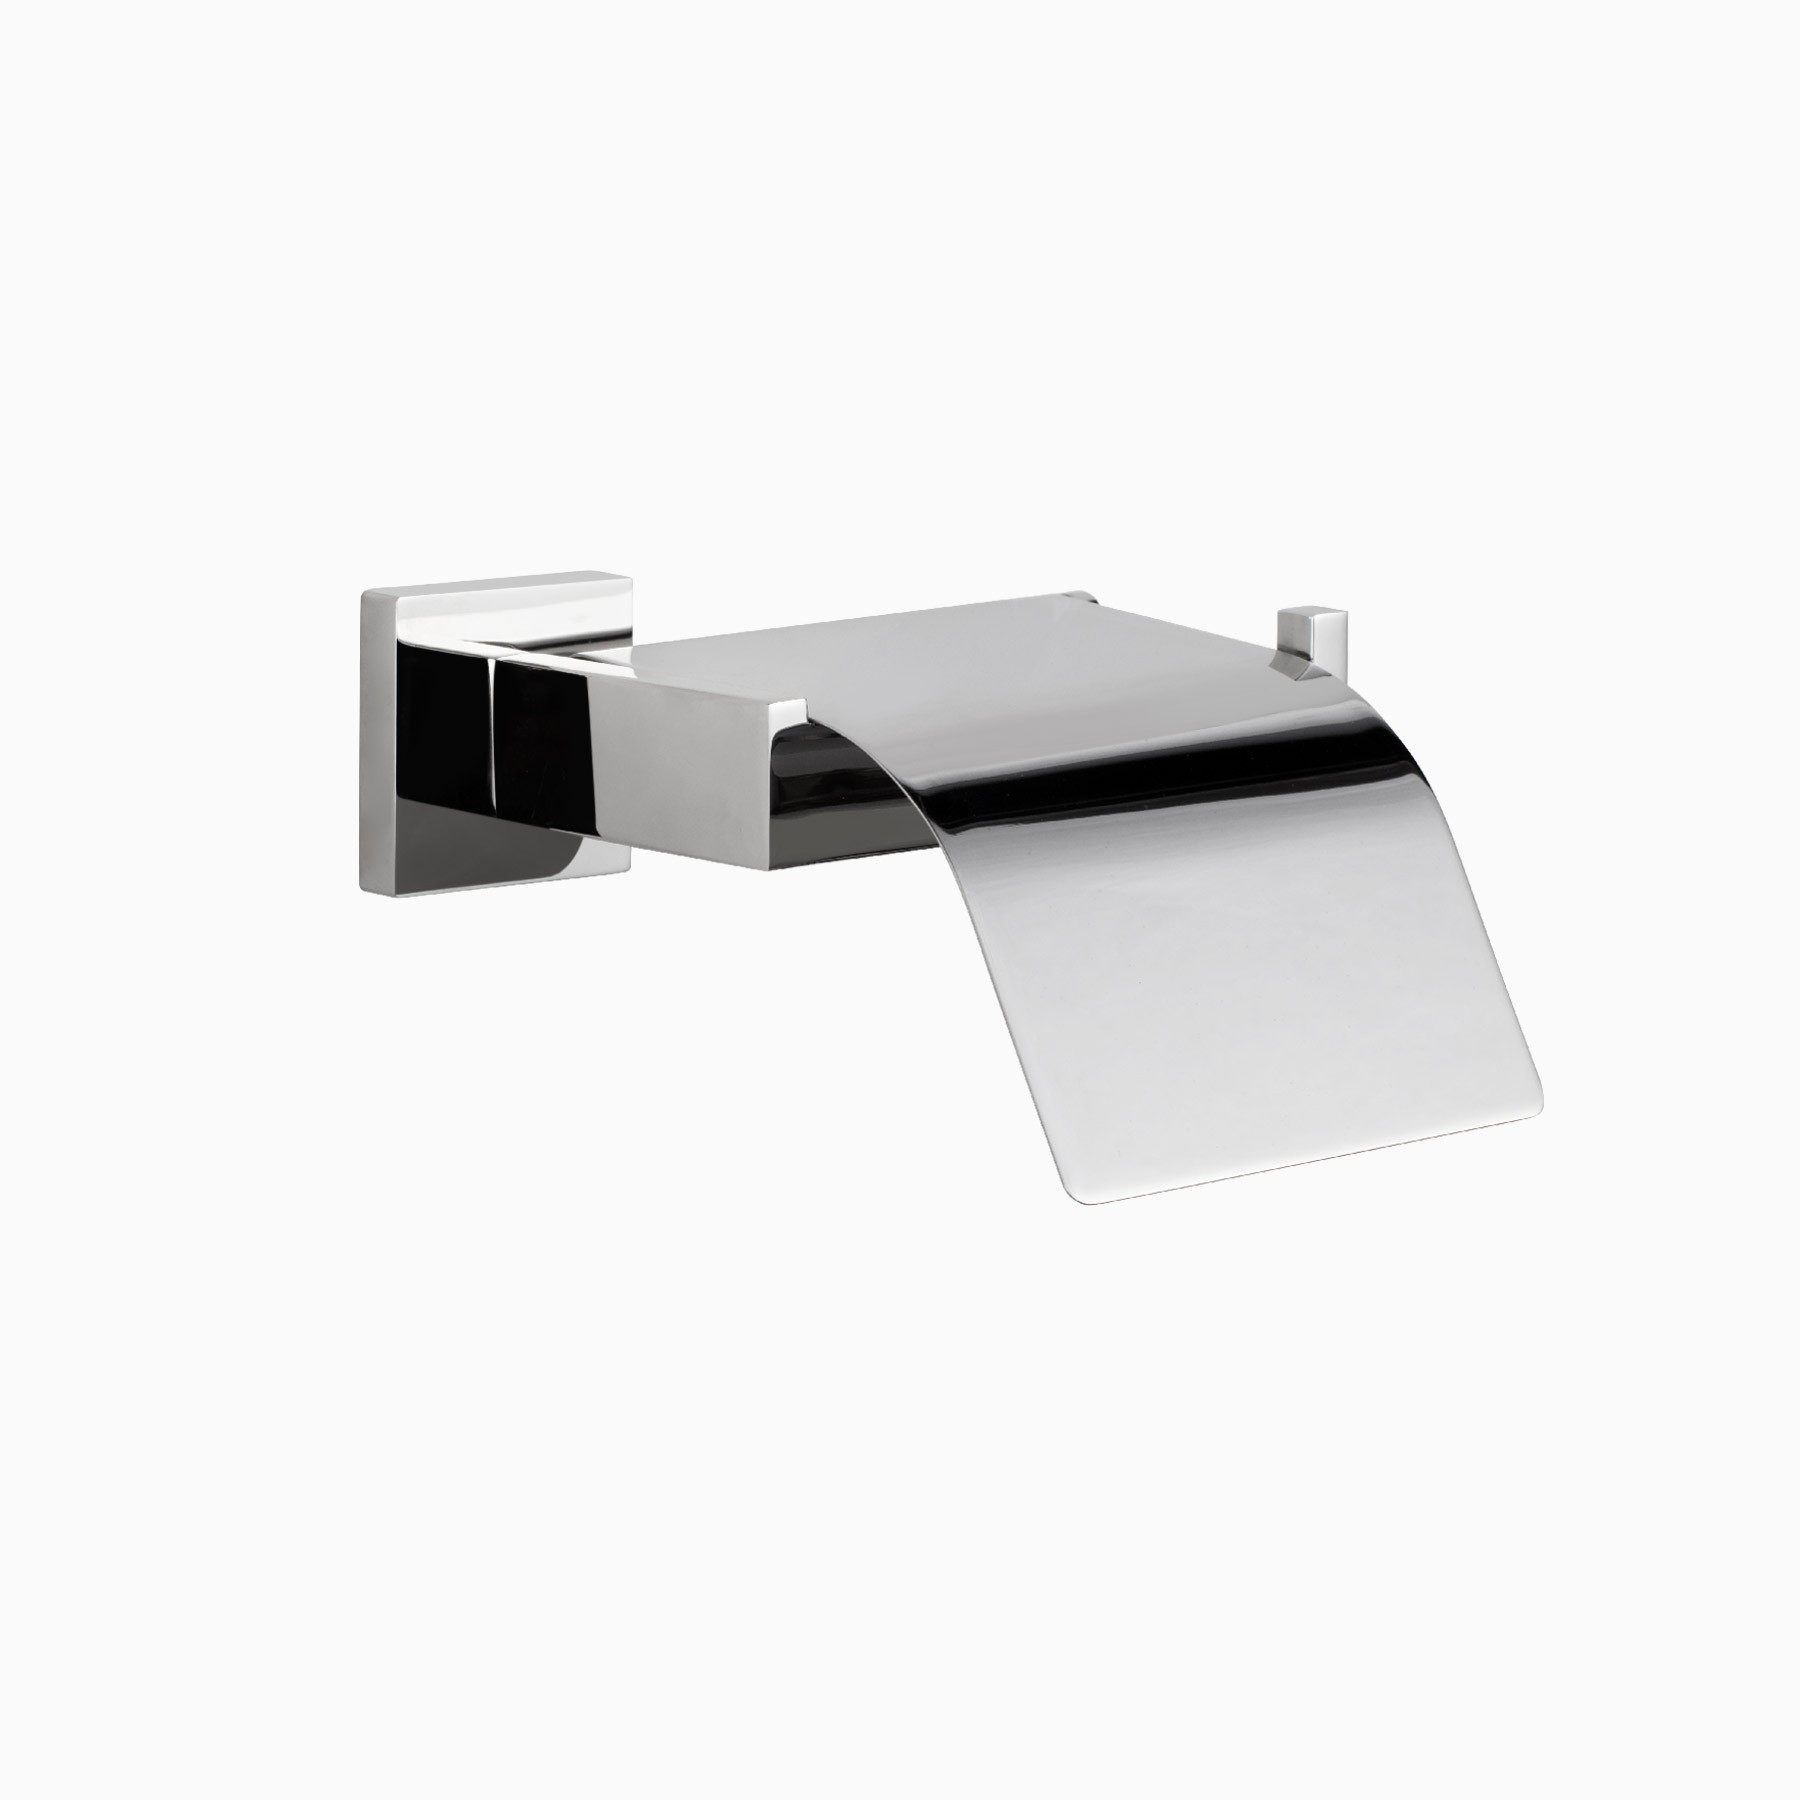 Stainless Steel Toilet Roll Holder Tribeca Wall Mounted Toilet Paper Roll Holder With Cover